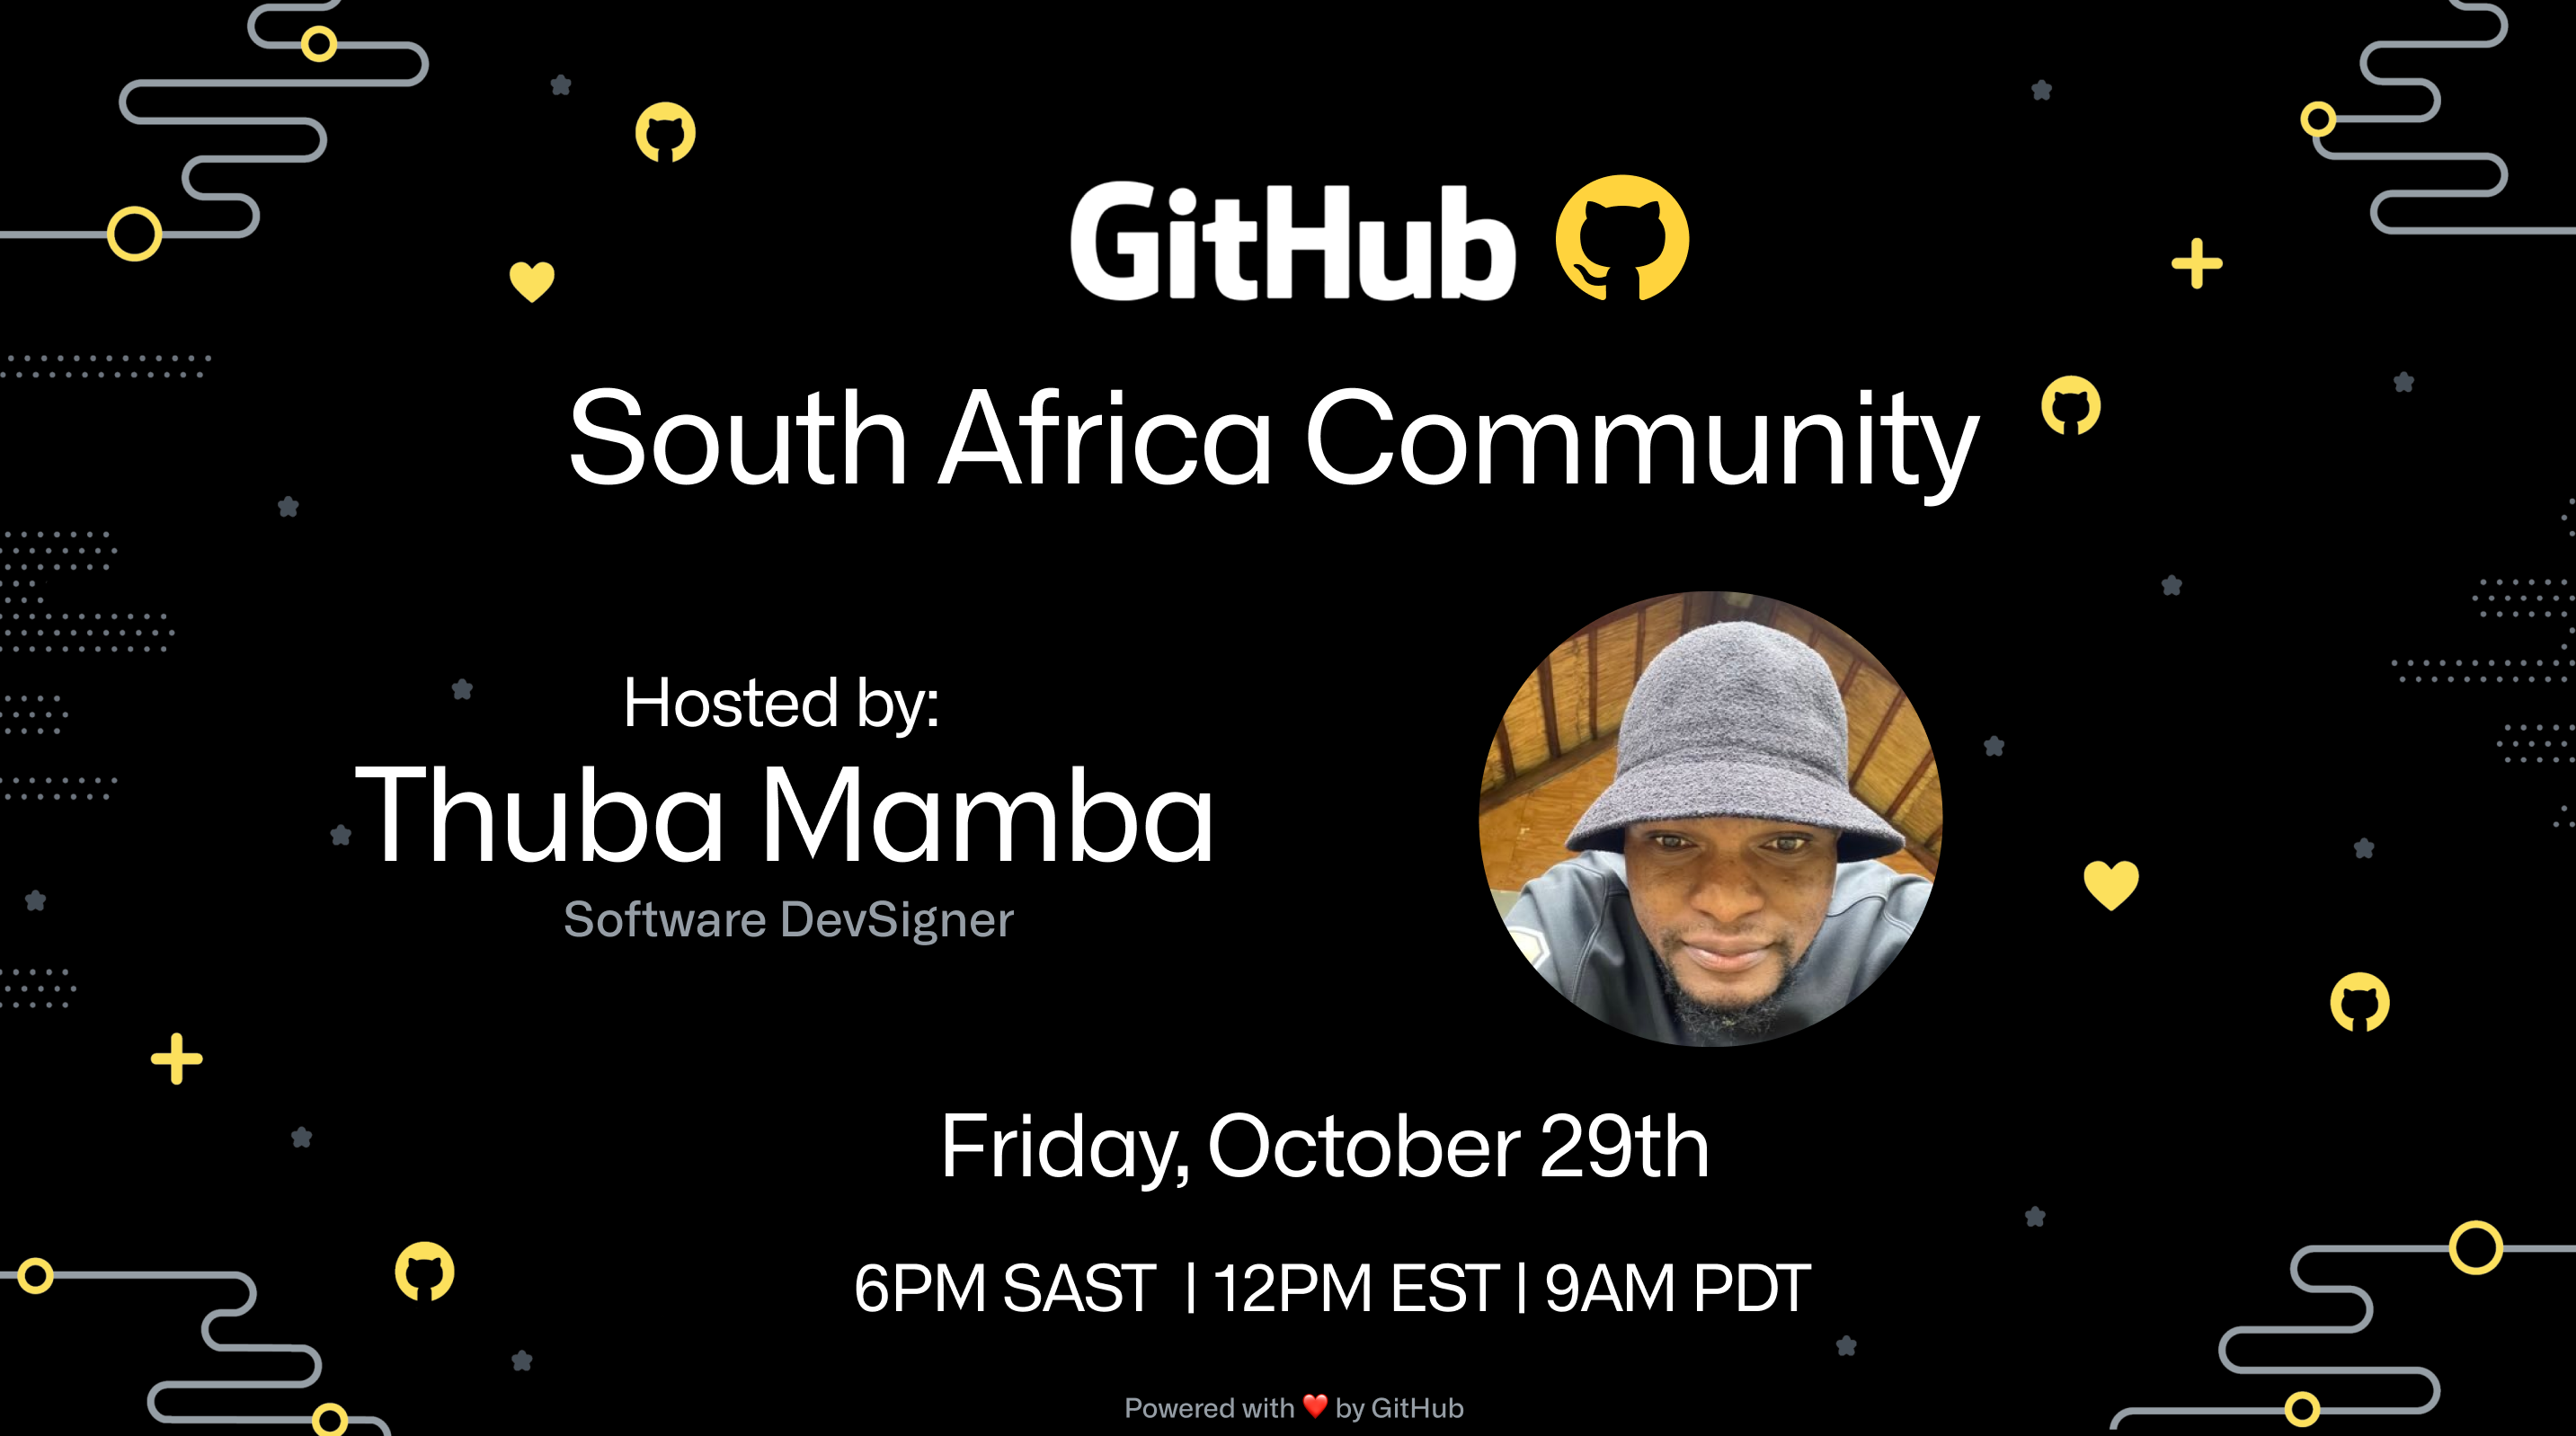 GitHub South Africa Community Event